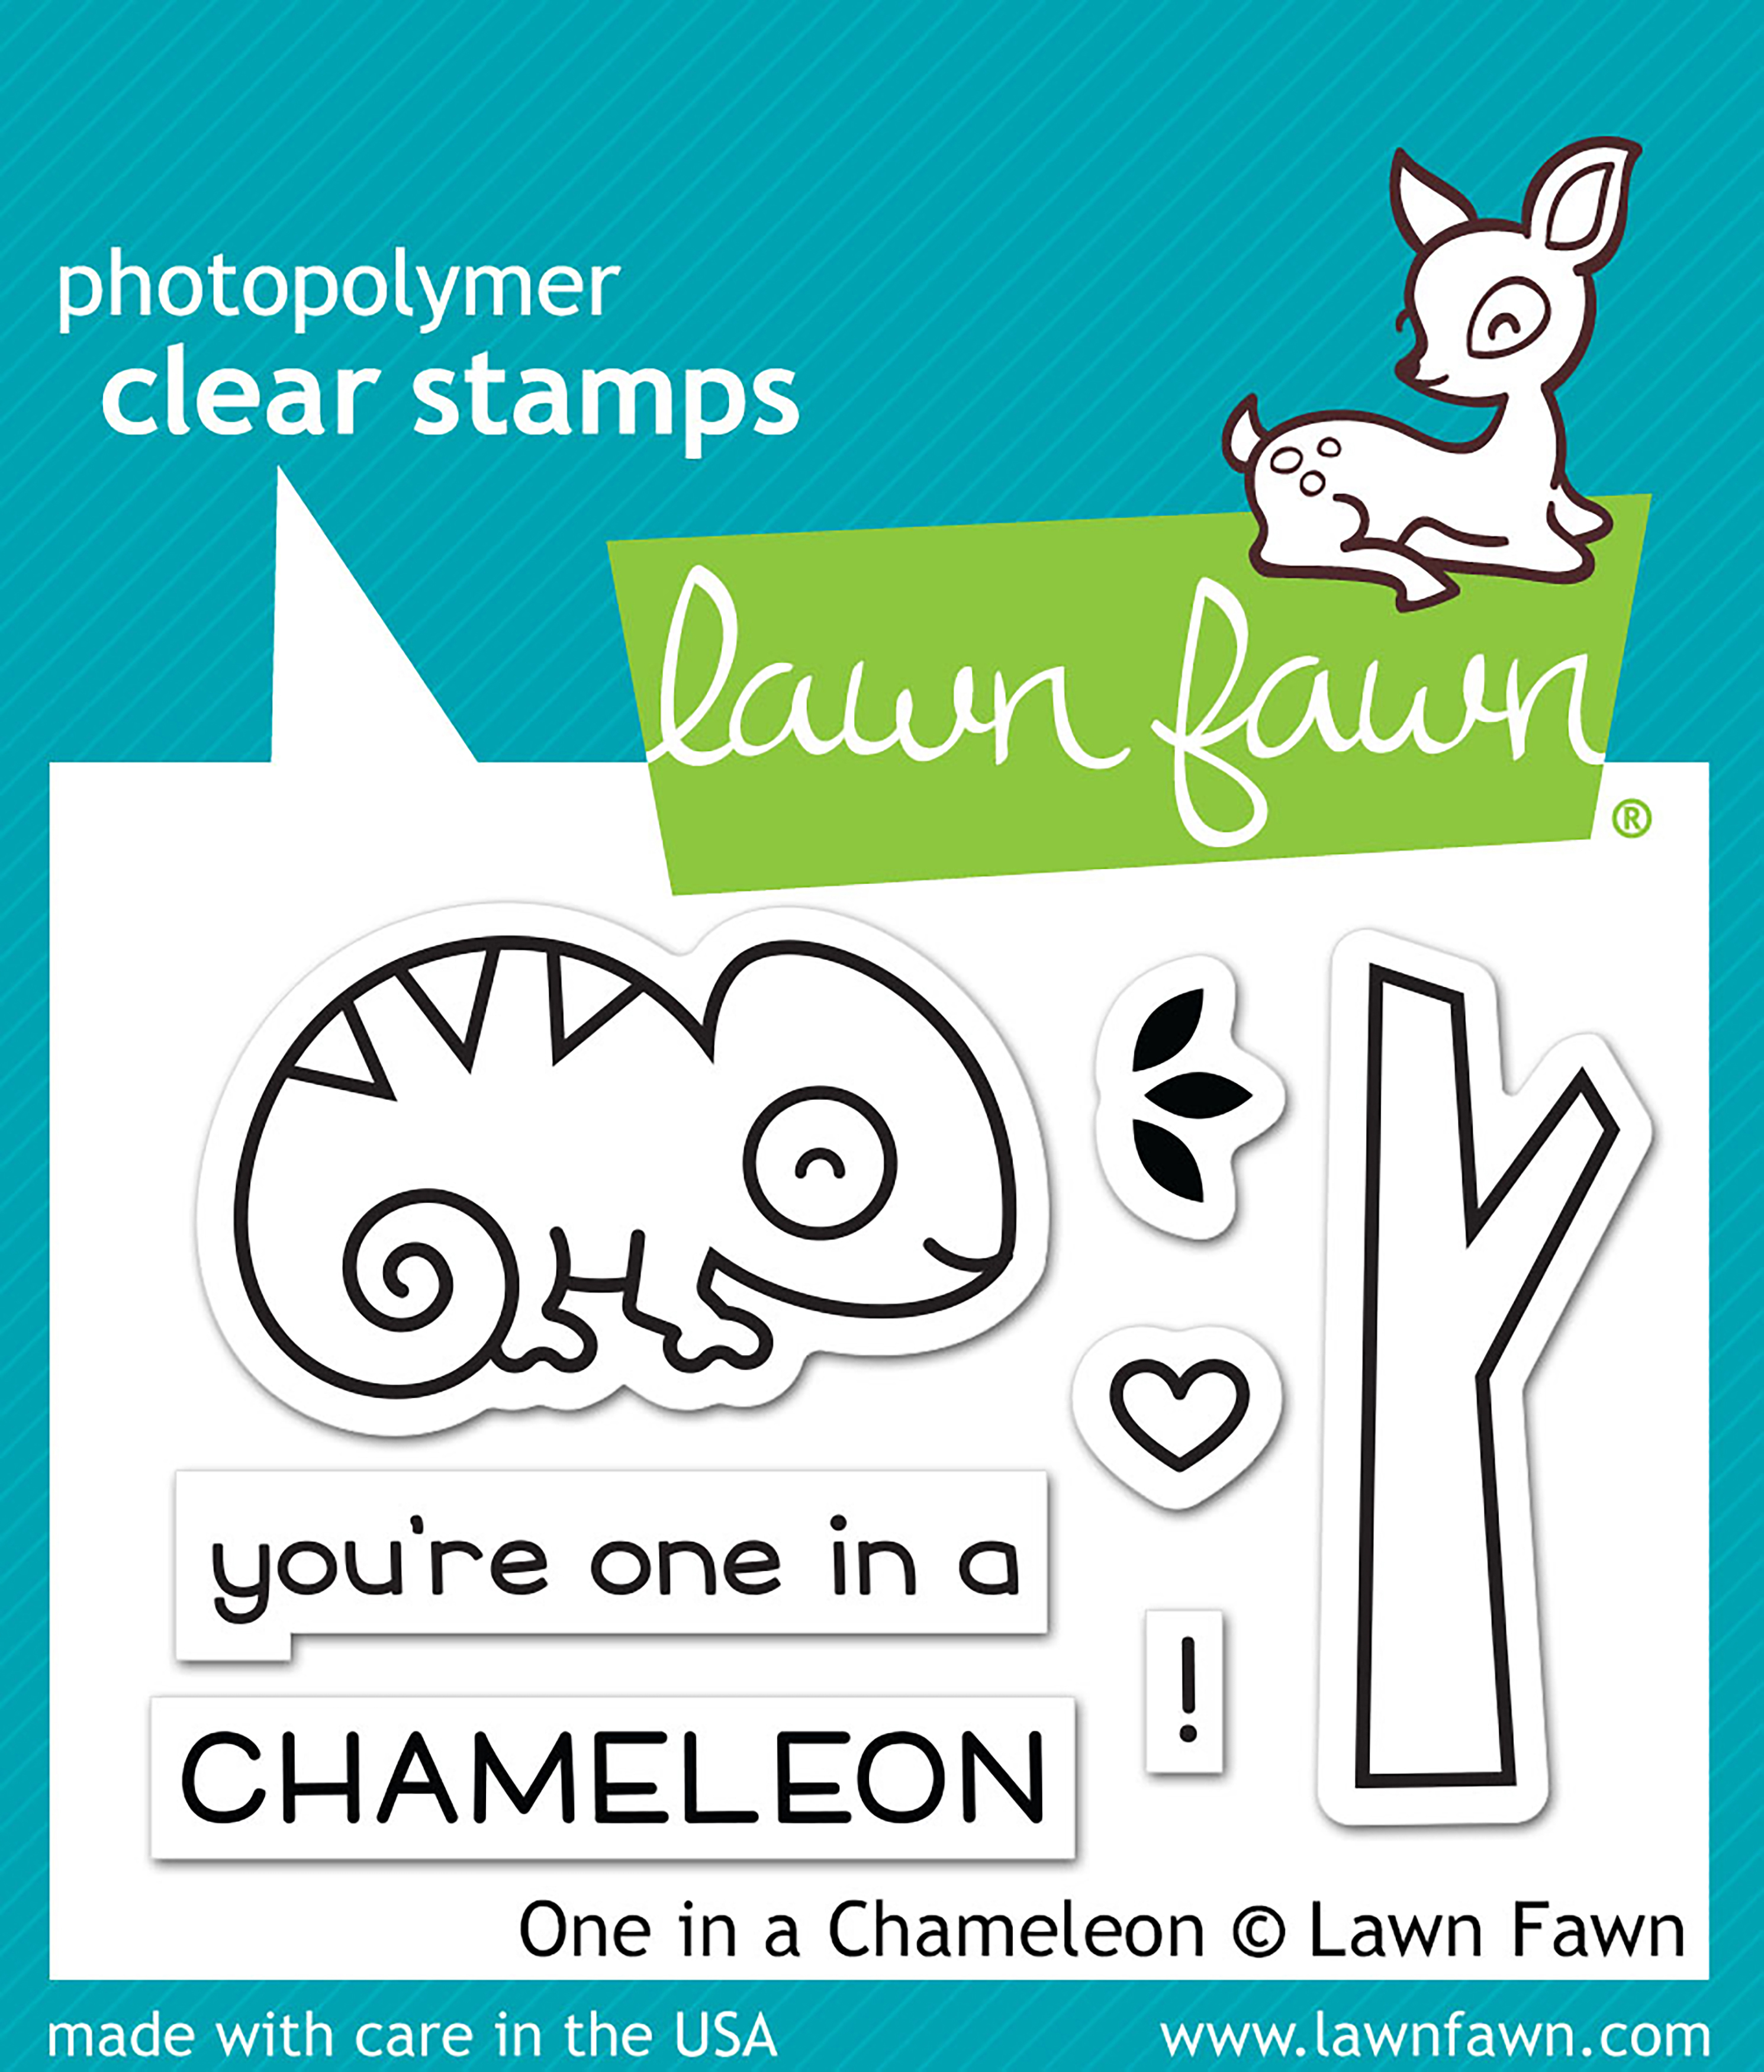 CHAMELEON -LAWN FAWN CLR STAMP